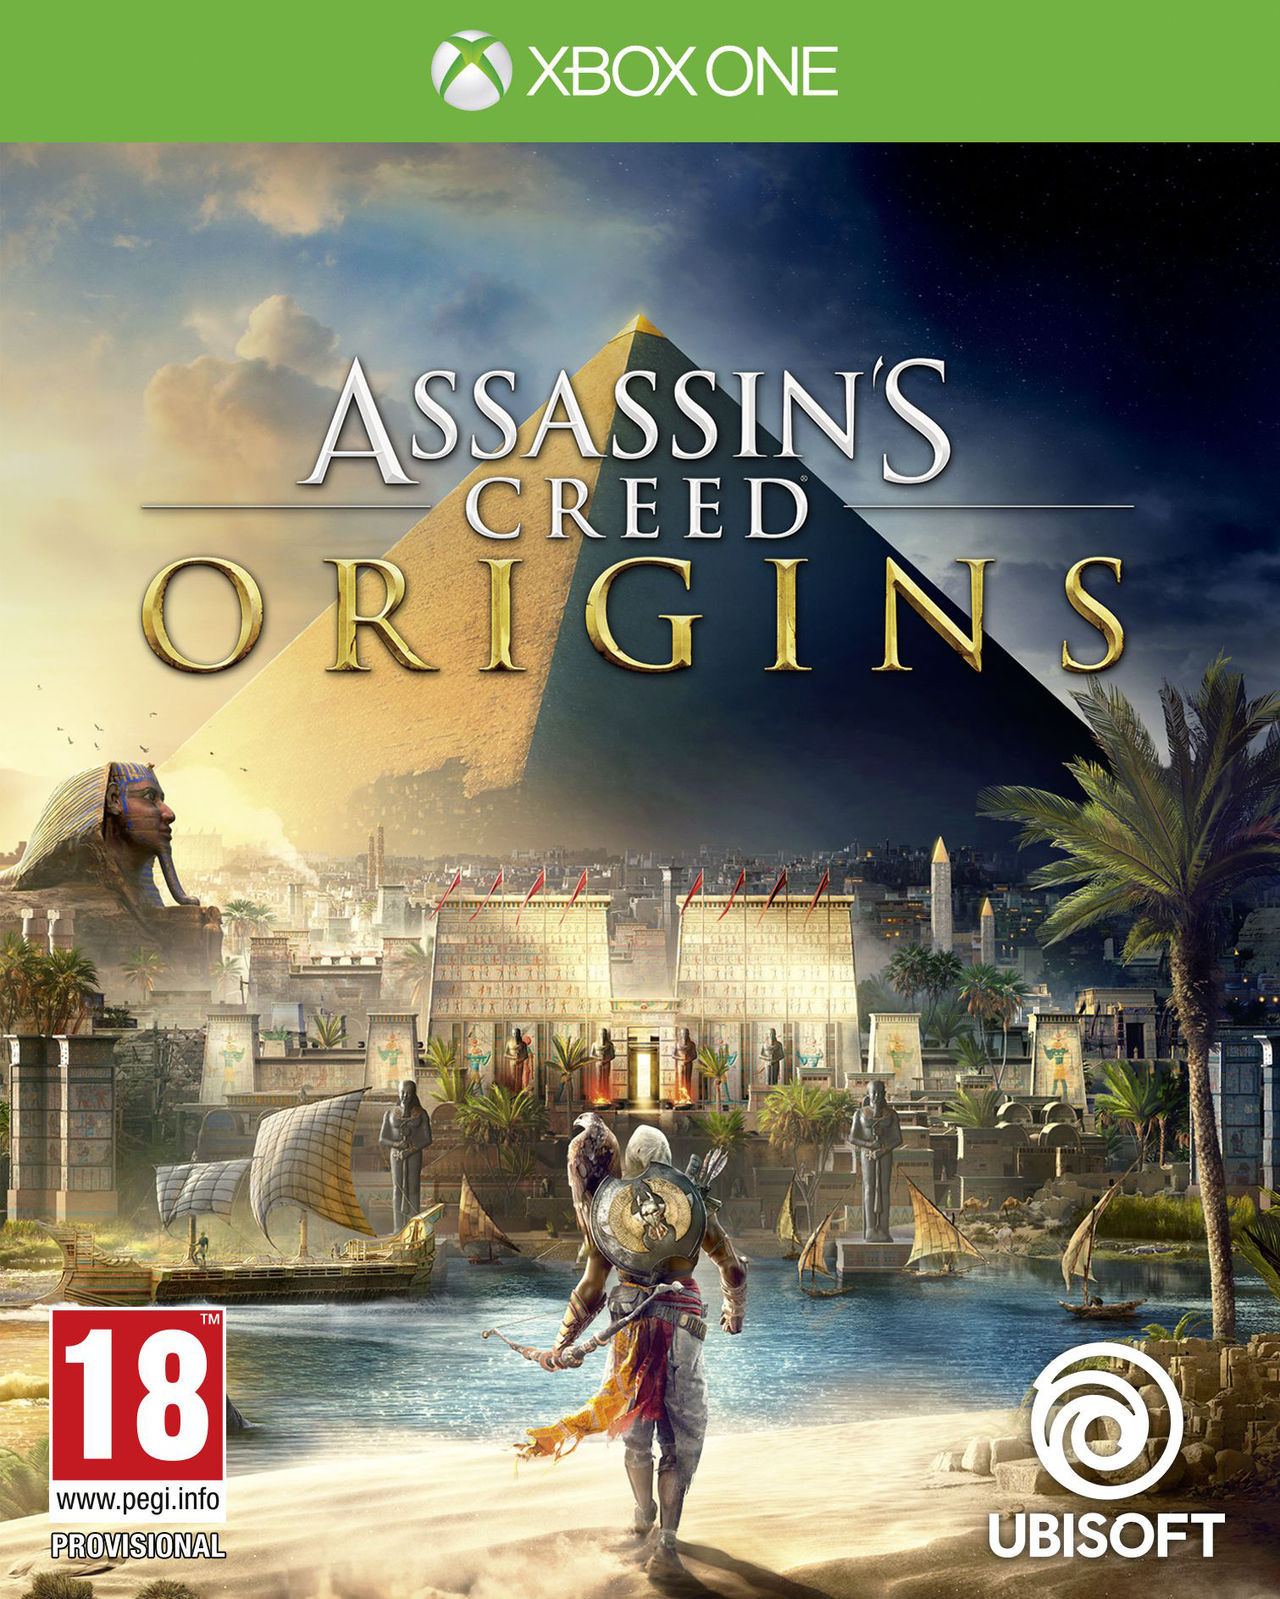 Imagen 22 de Assassin's Creed Origins para Xbox One